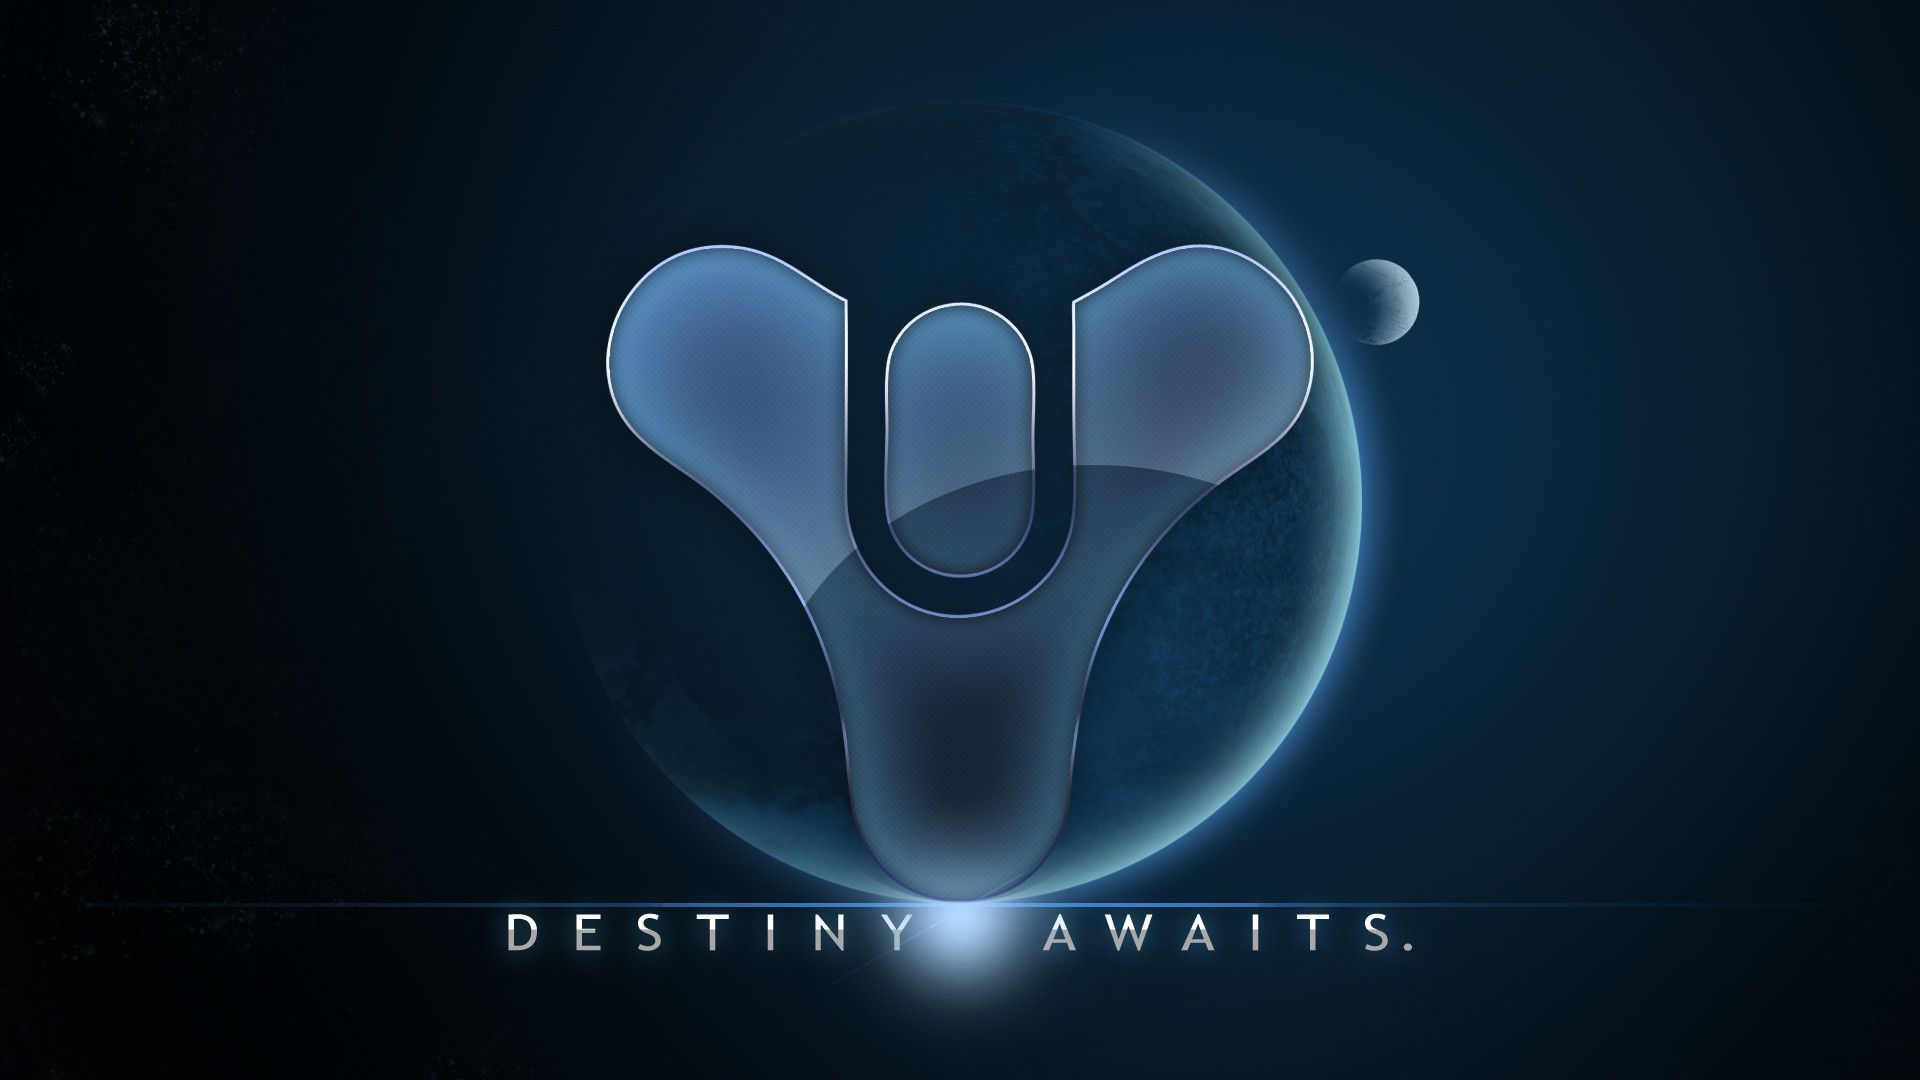 cool destiny wallpapers